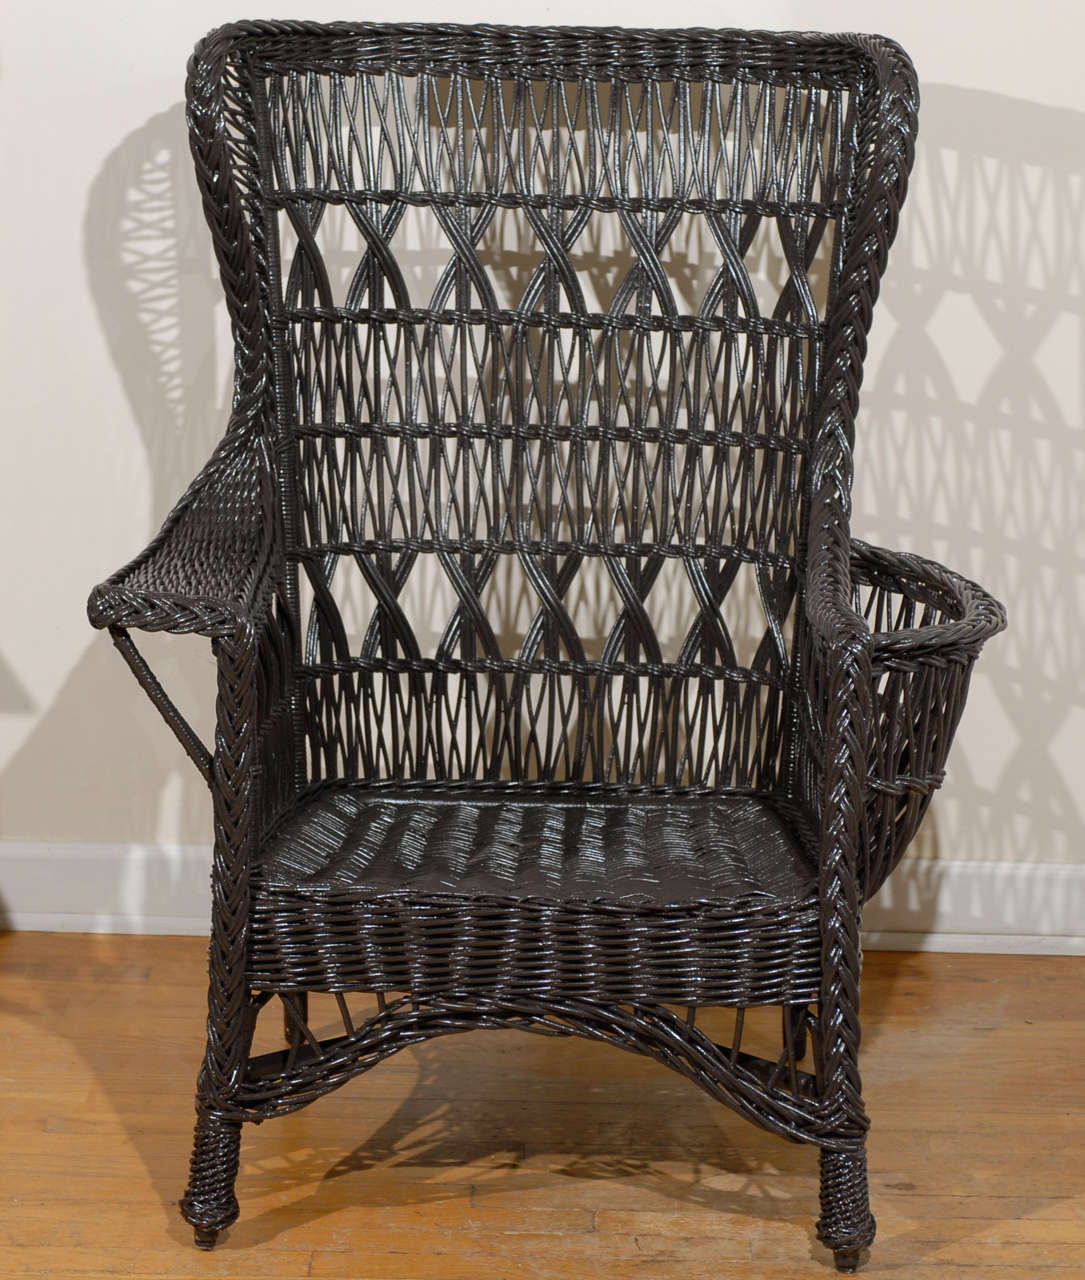 Antique American Wicker Wing Chair with Magazine Pocket at